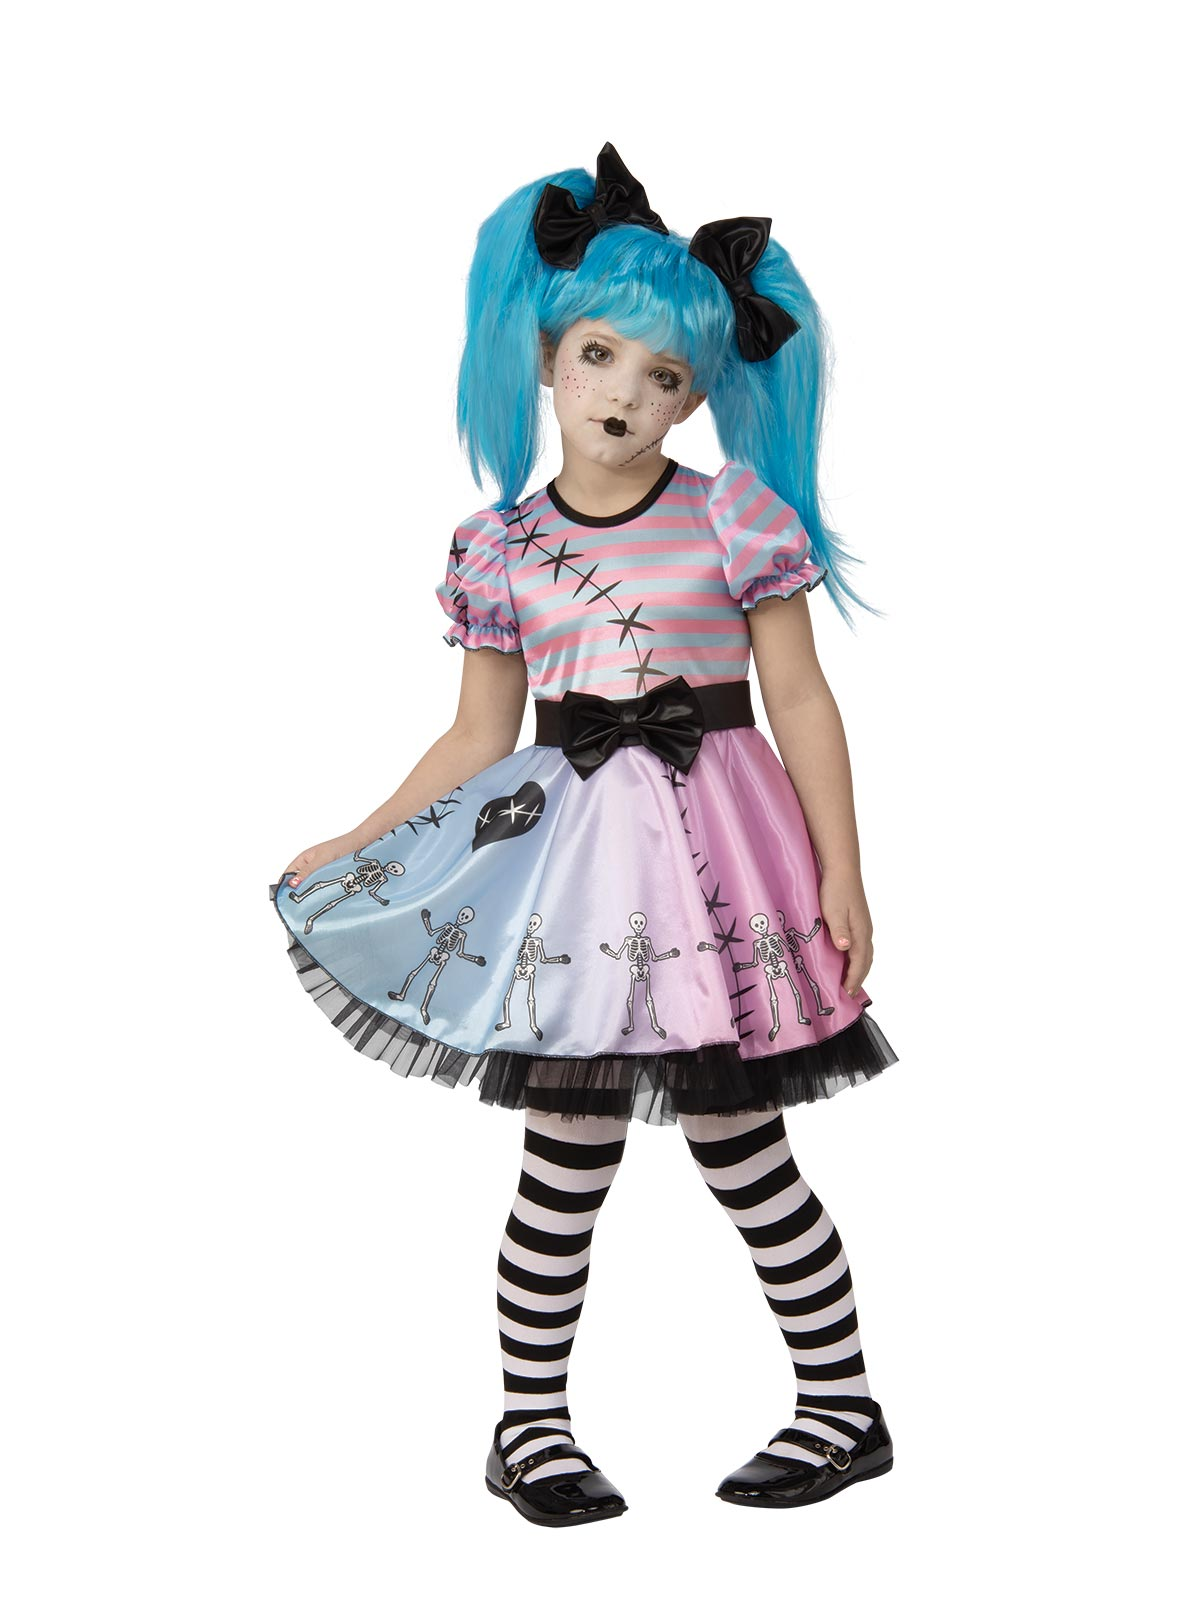 Little Blue Skelly Girl Child Costume - Buy Online Only